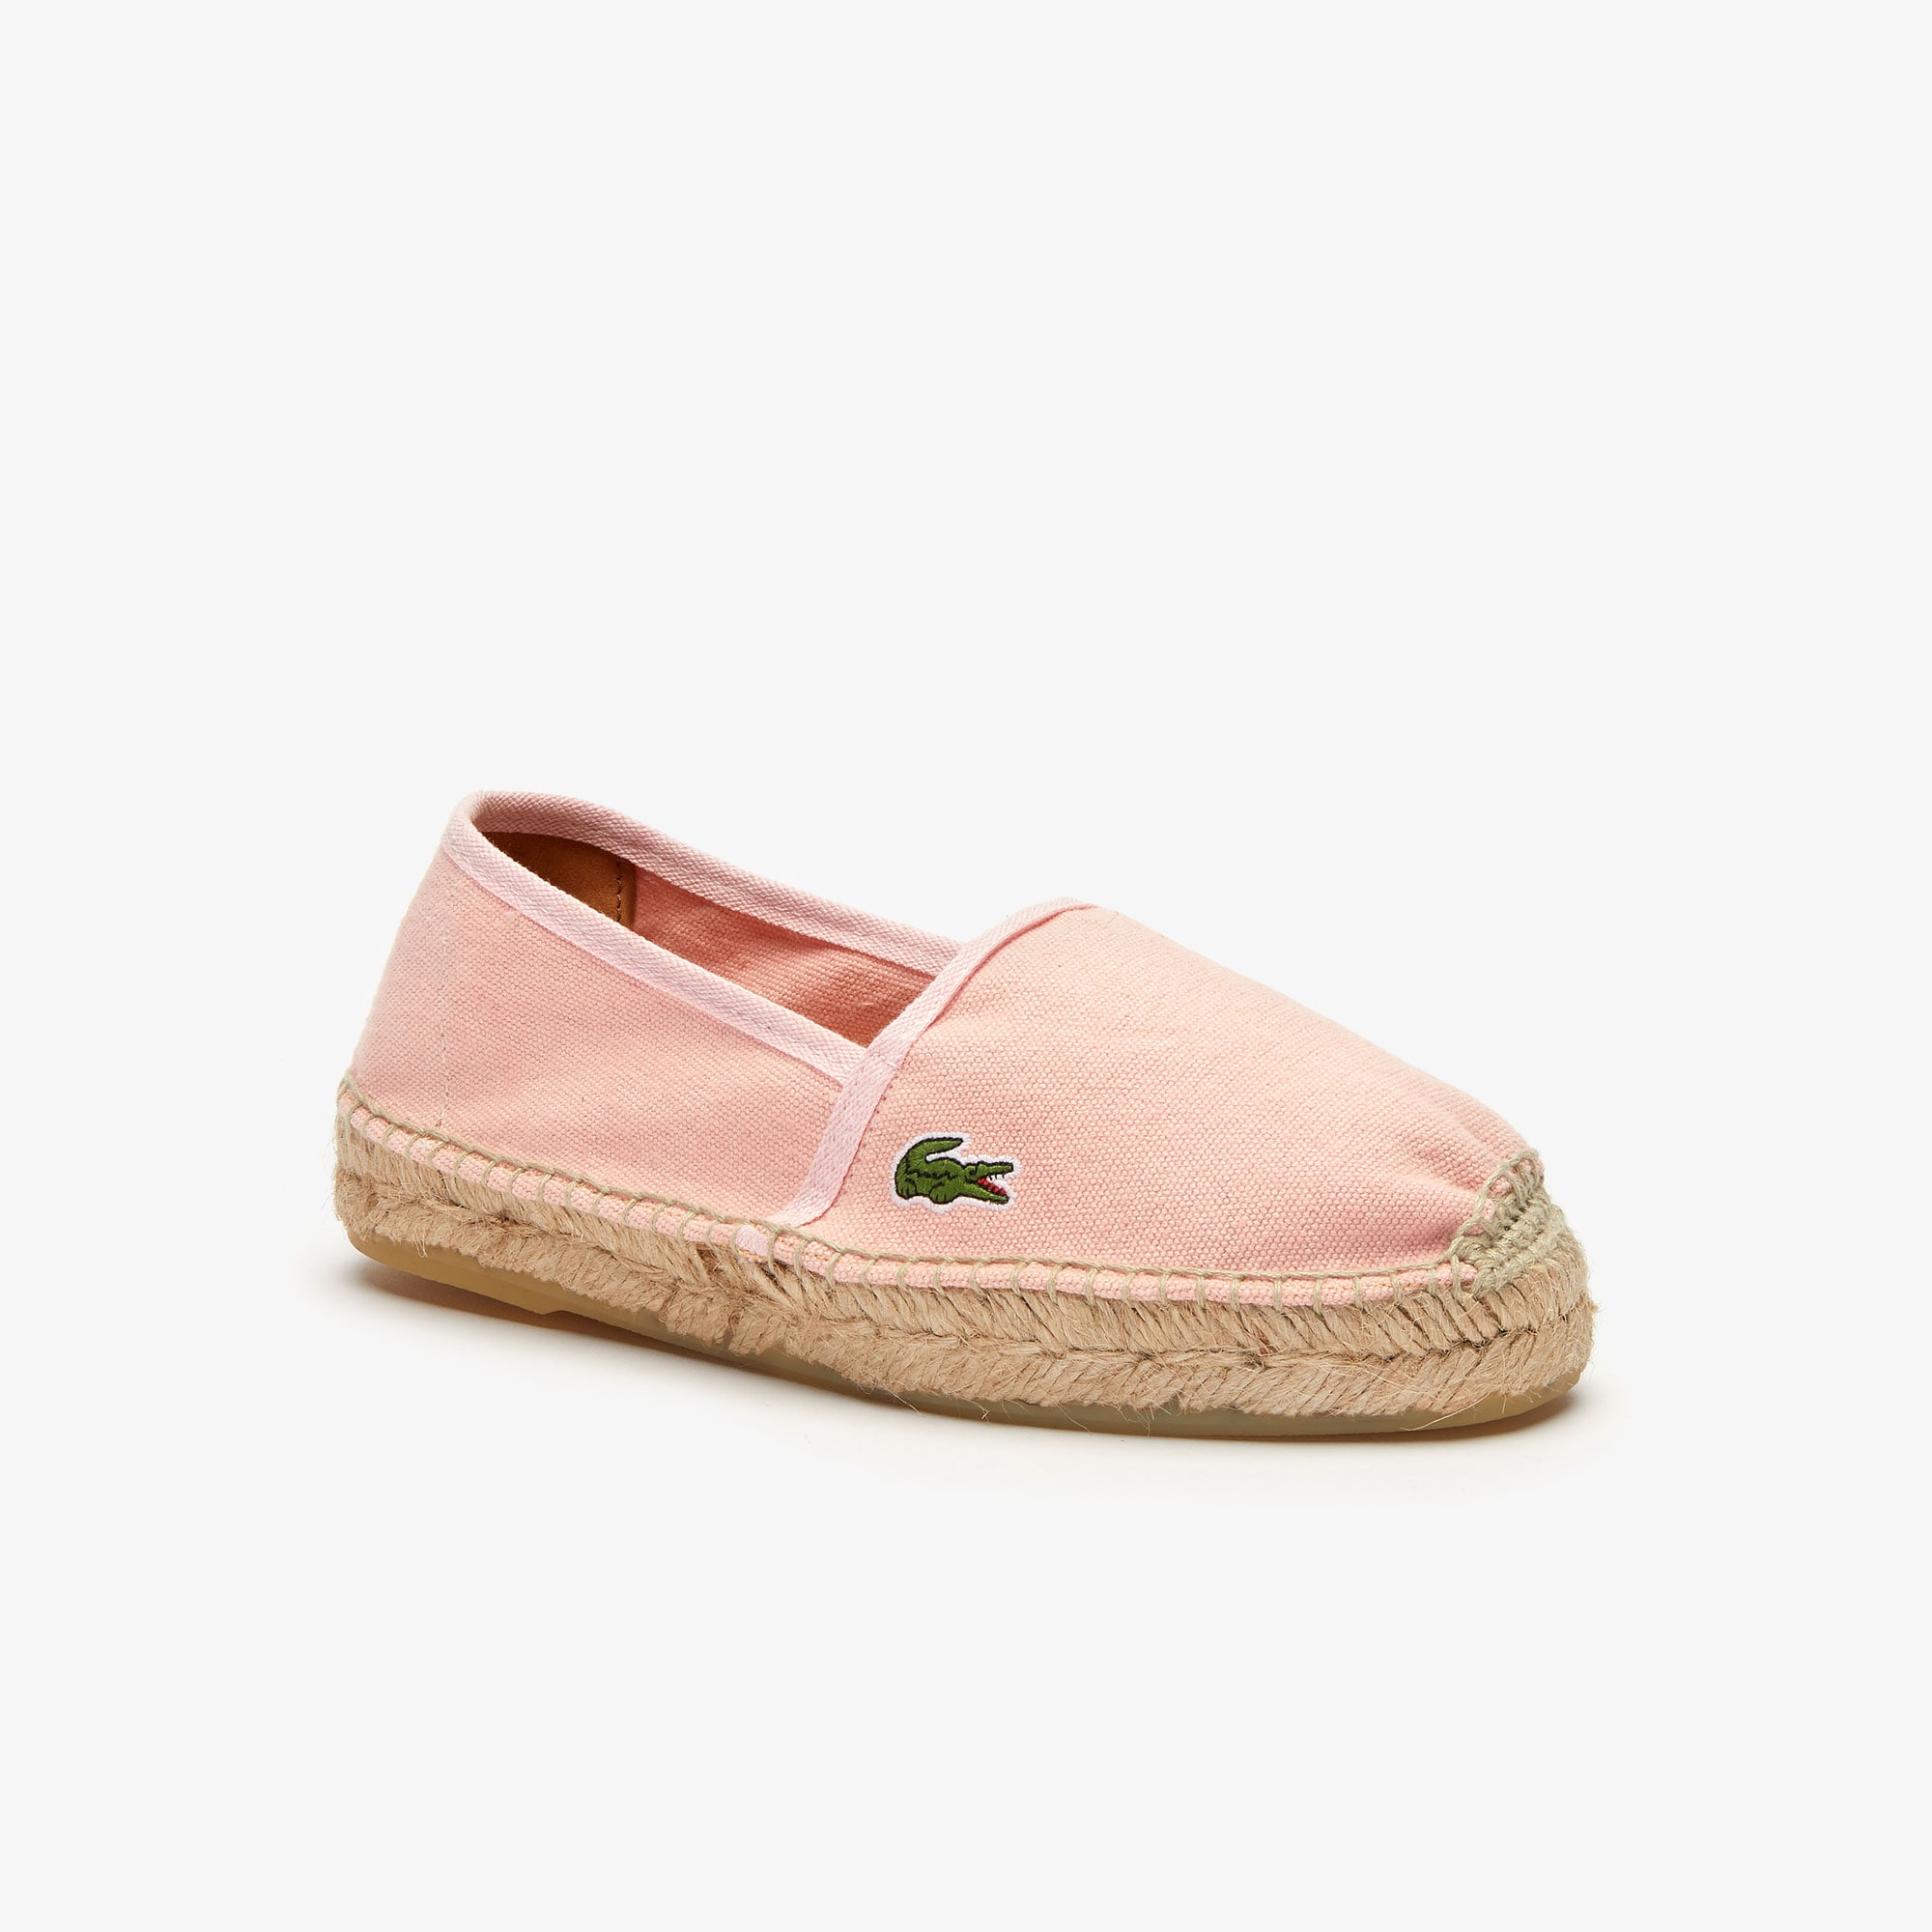 36b09c4f2339a Lacoste shoes for women: Boots, Trainers, Sneakers | LACOSTE